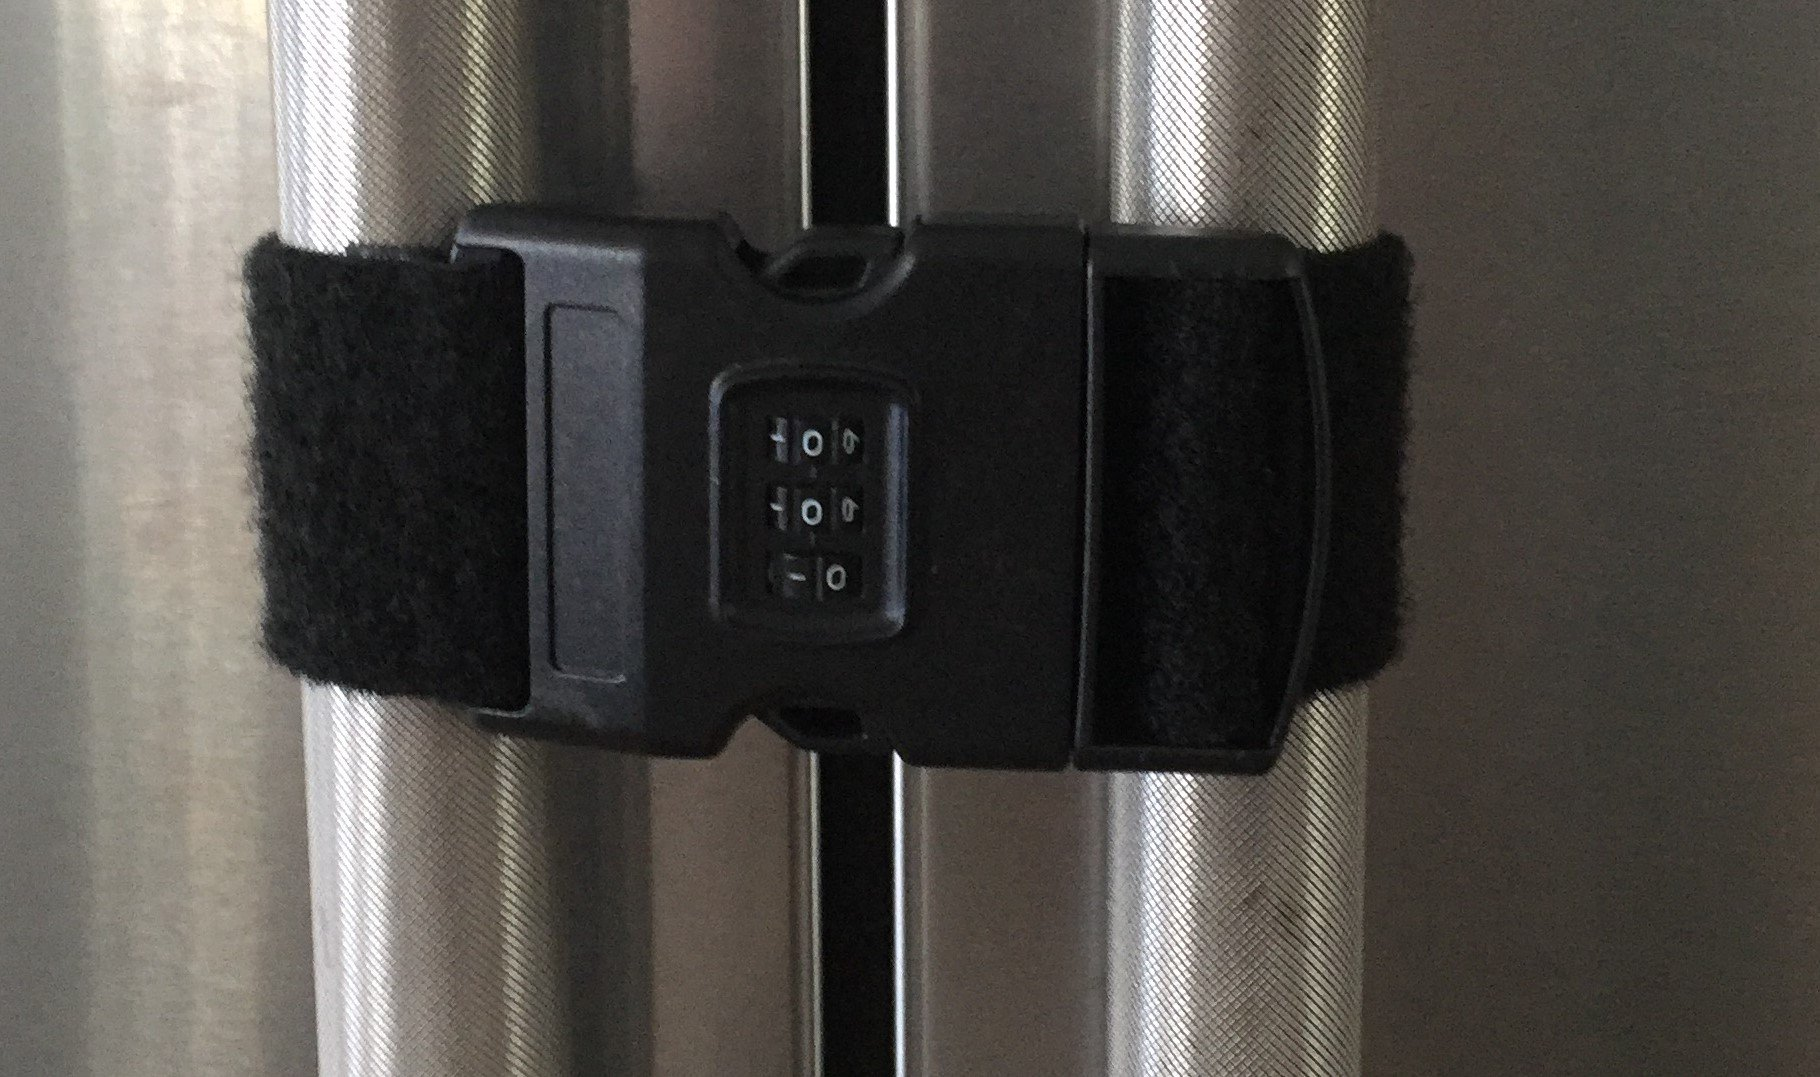 Multi use Safety Self Adhesive Refrigerator Lock Latch with 3 Digits Combination for Toddlers Children and Special Needs Adults or Children / 1 Count/No Hardware or Tools is Needed.